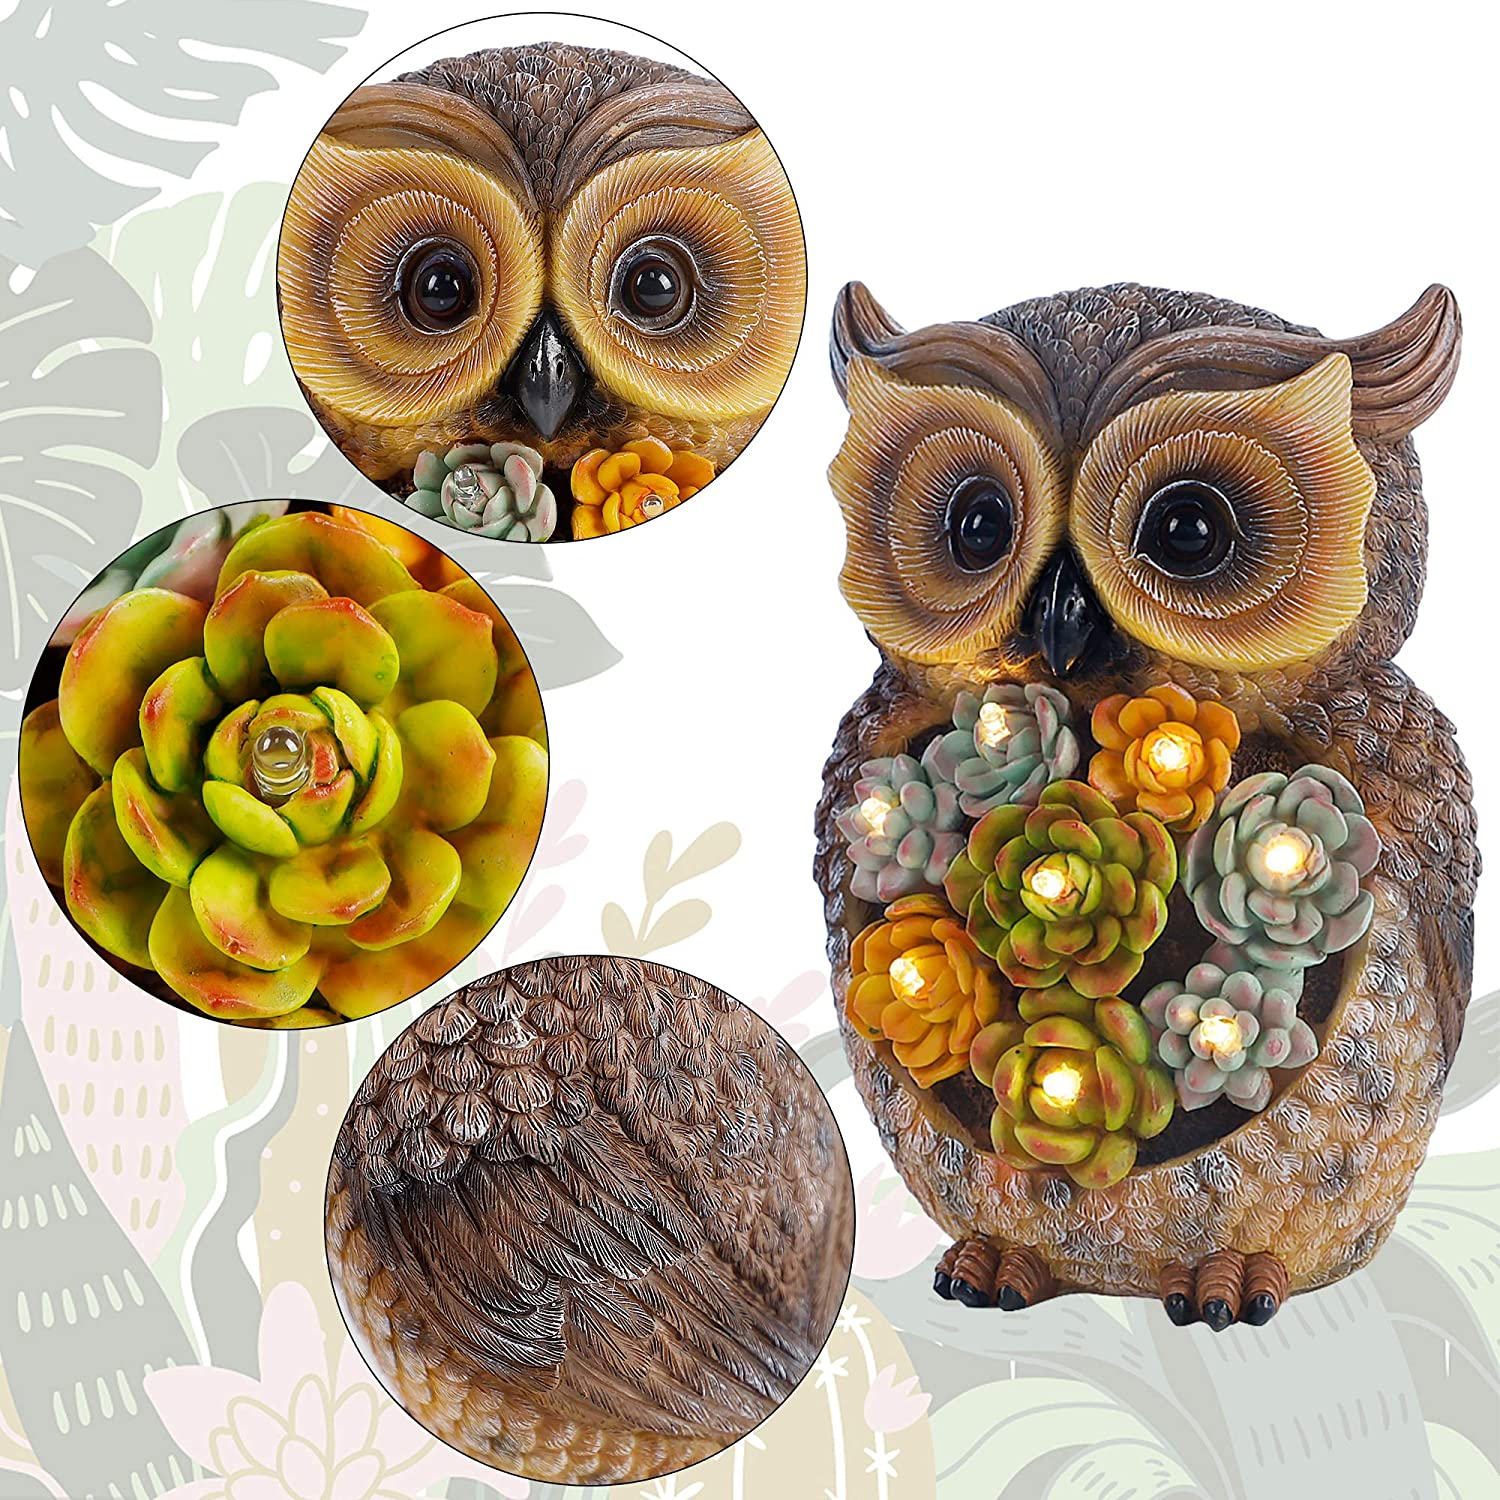 Resin Owl Figurine Garden Lawn Ornaments with Solar LED Lights for Outdoor Yard Garden Decorations FORUP Owl Garden Statue